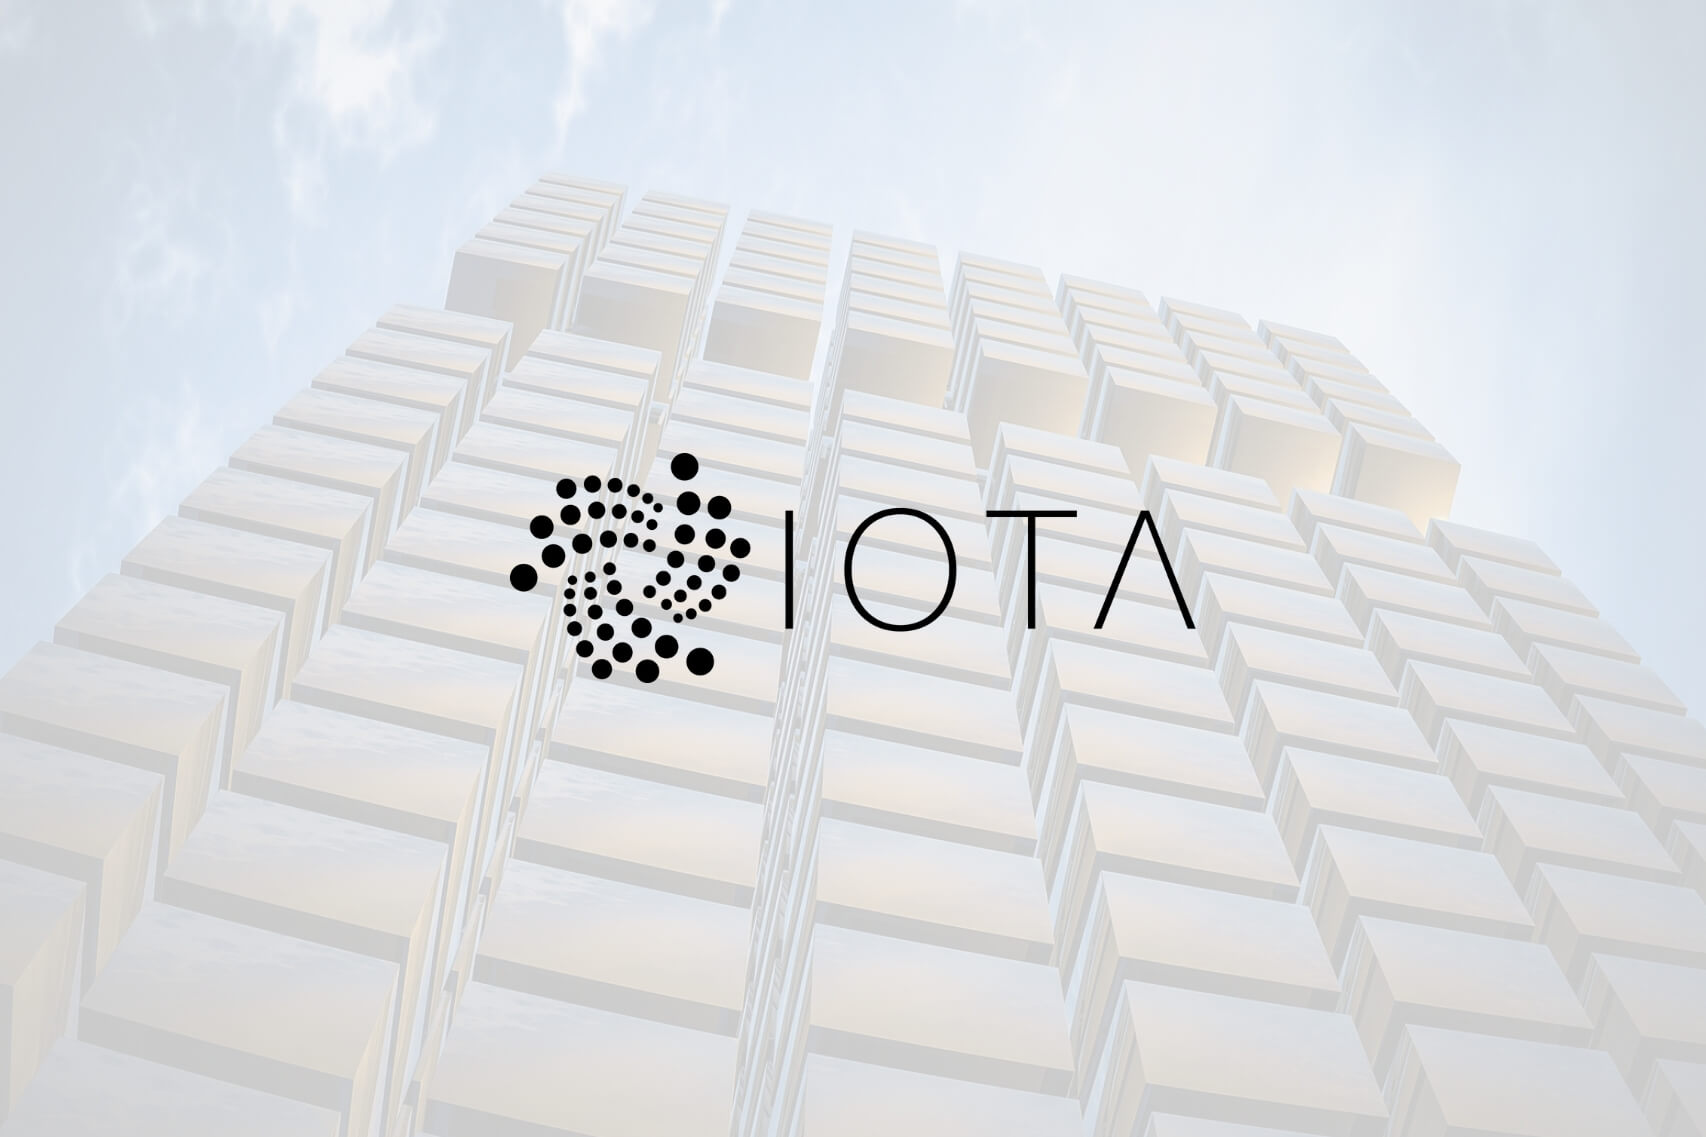 IOTA Trinity Desktop Beta Wallet: Wallet Features and How to Set It Up